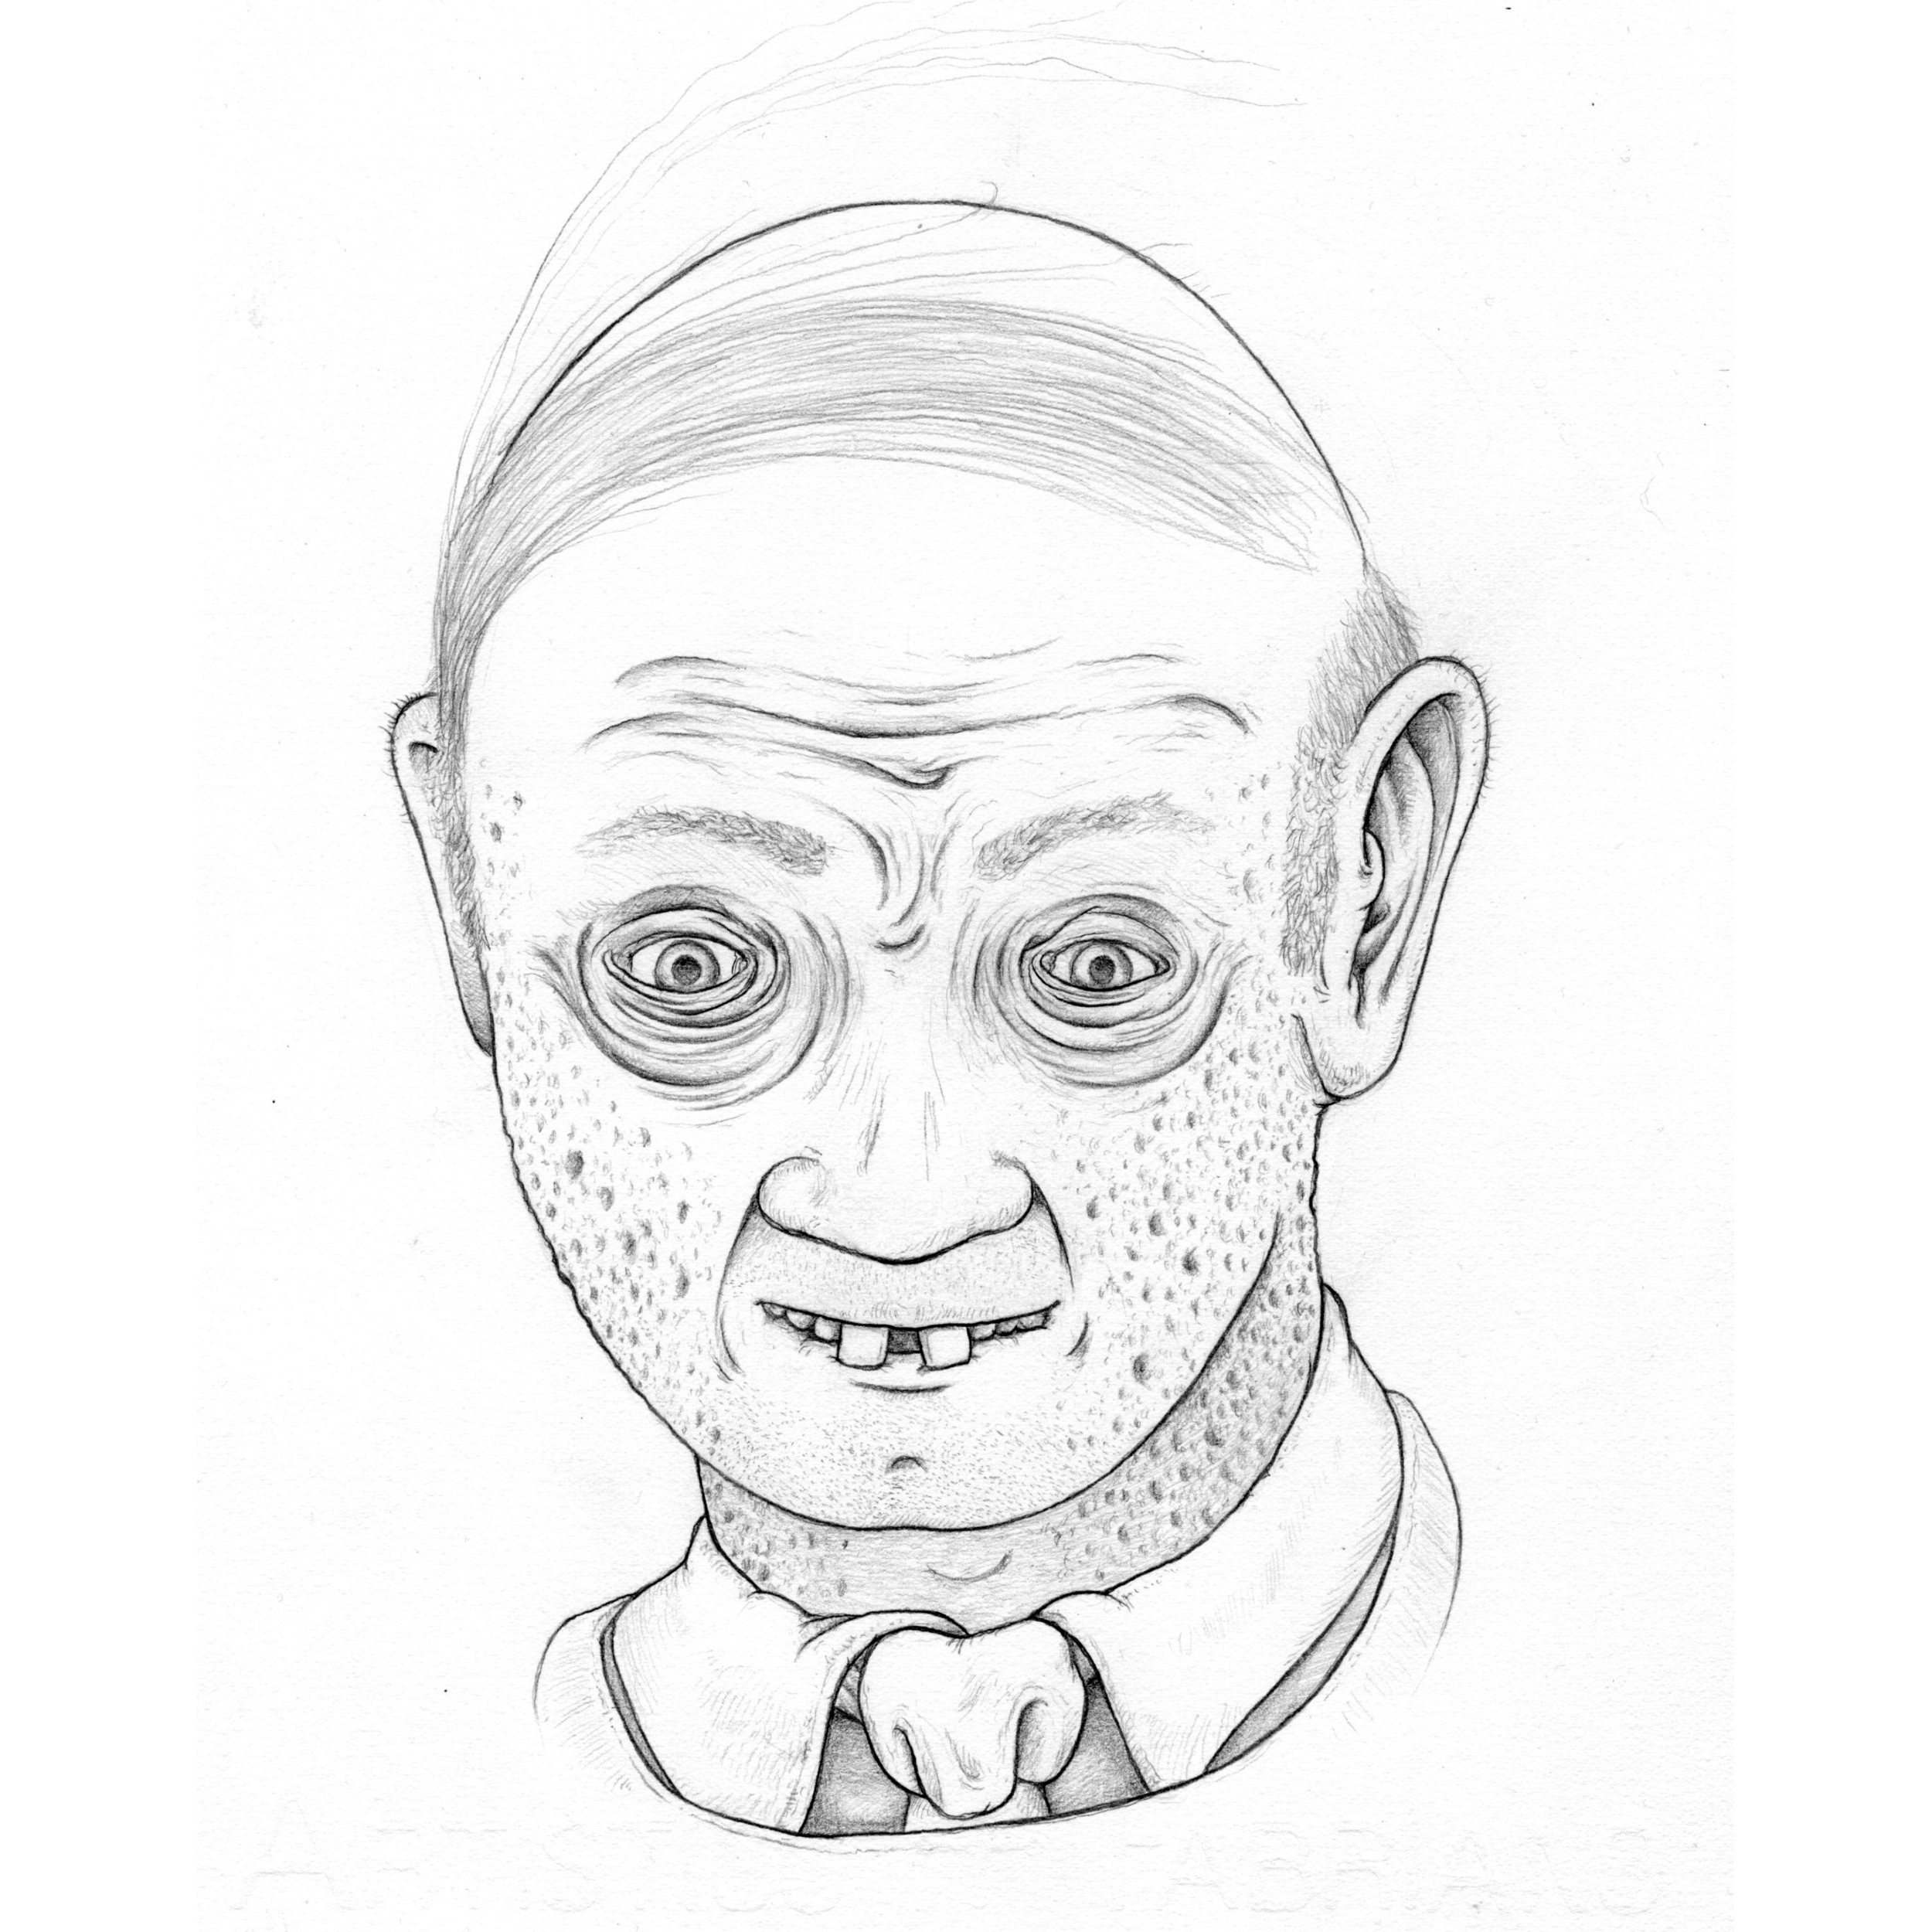 """Mr. Setzer, my high school speech teacher from Mequon, WI. in 1990 drawn for our  Teachers from Memory project with  Renee French . Mr. Setzer used to challenge students with verbal quips and would usually """"win"""" (end it) by essentially implying that his challenger is gay. Watercolor coming soon."""